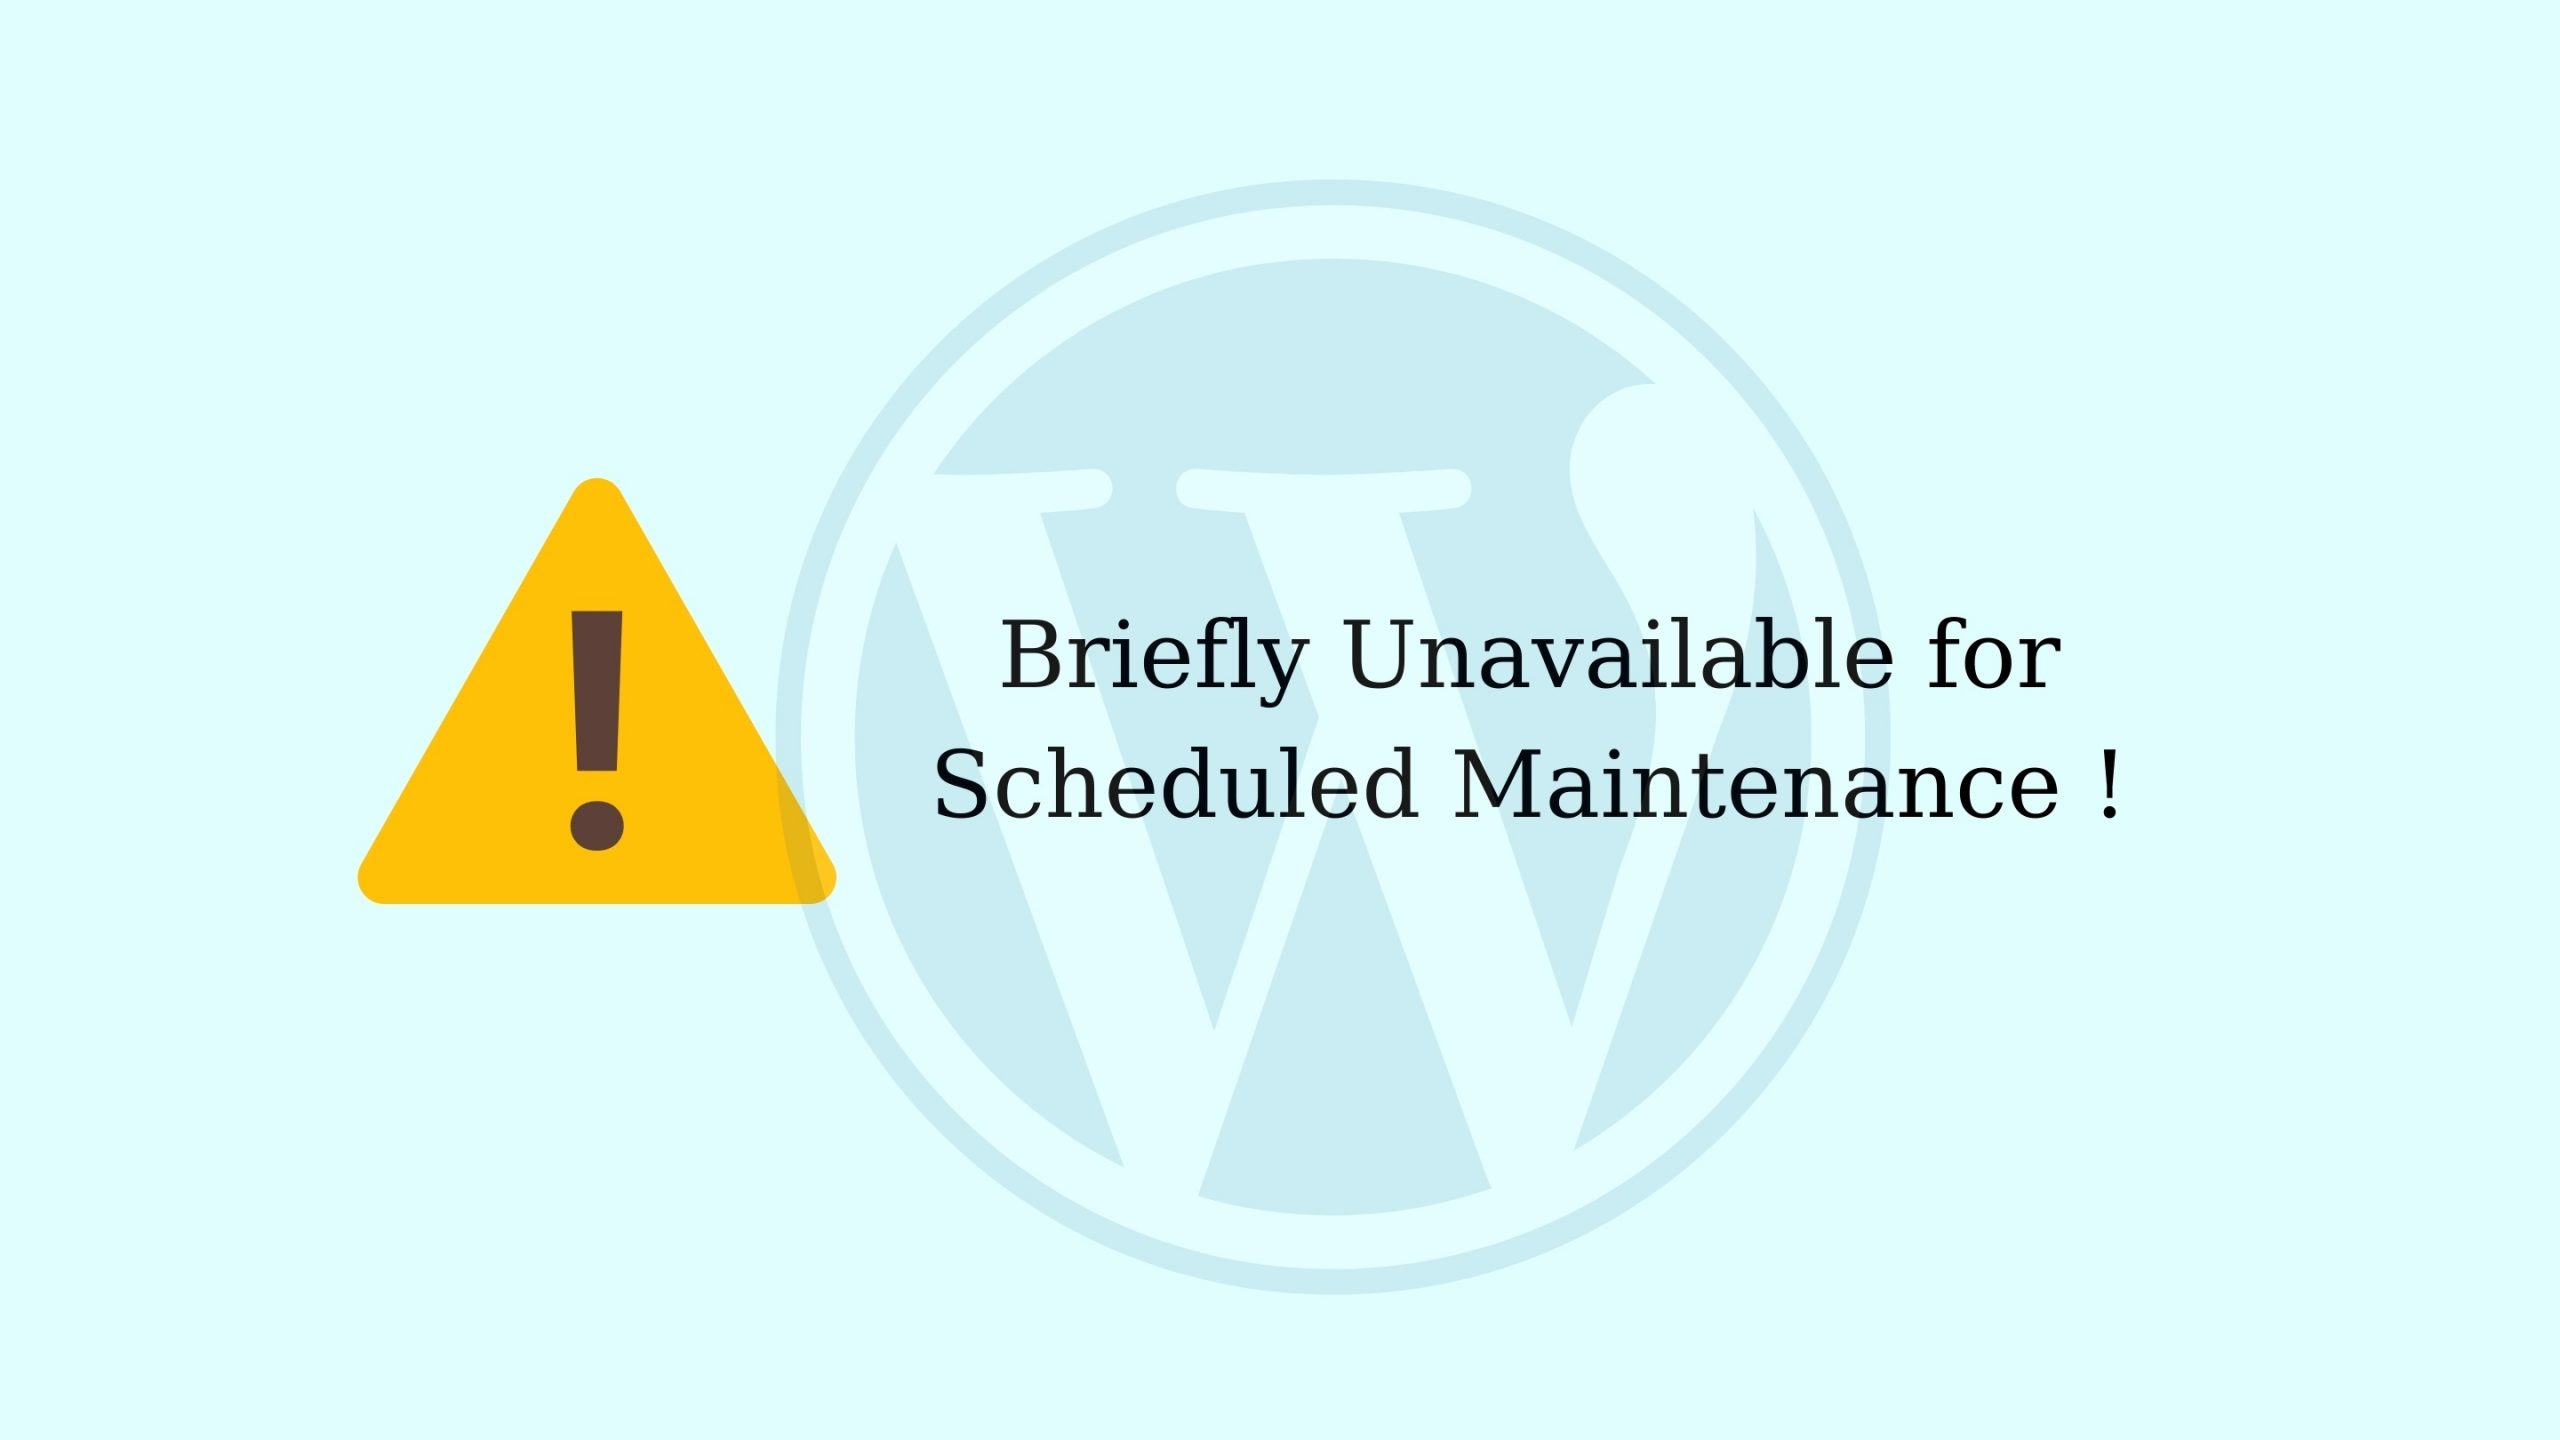 Khắc phục lỗi Briefly Unavailable for Scheduled Maintenance trong Wordpress